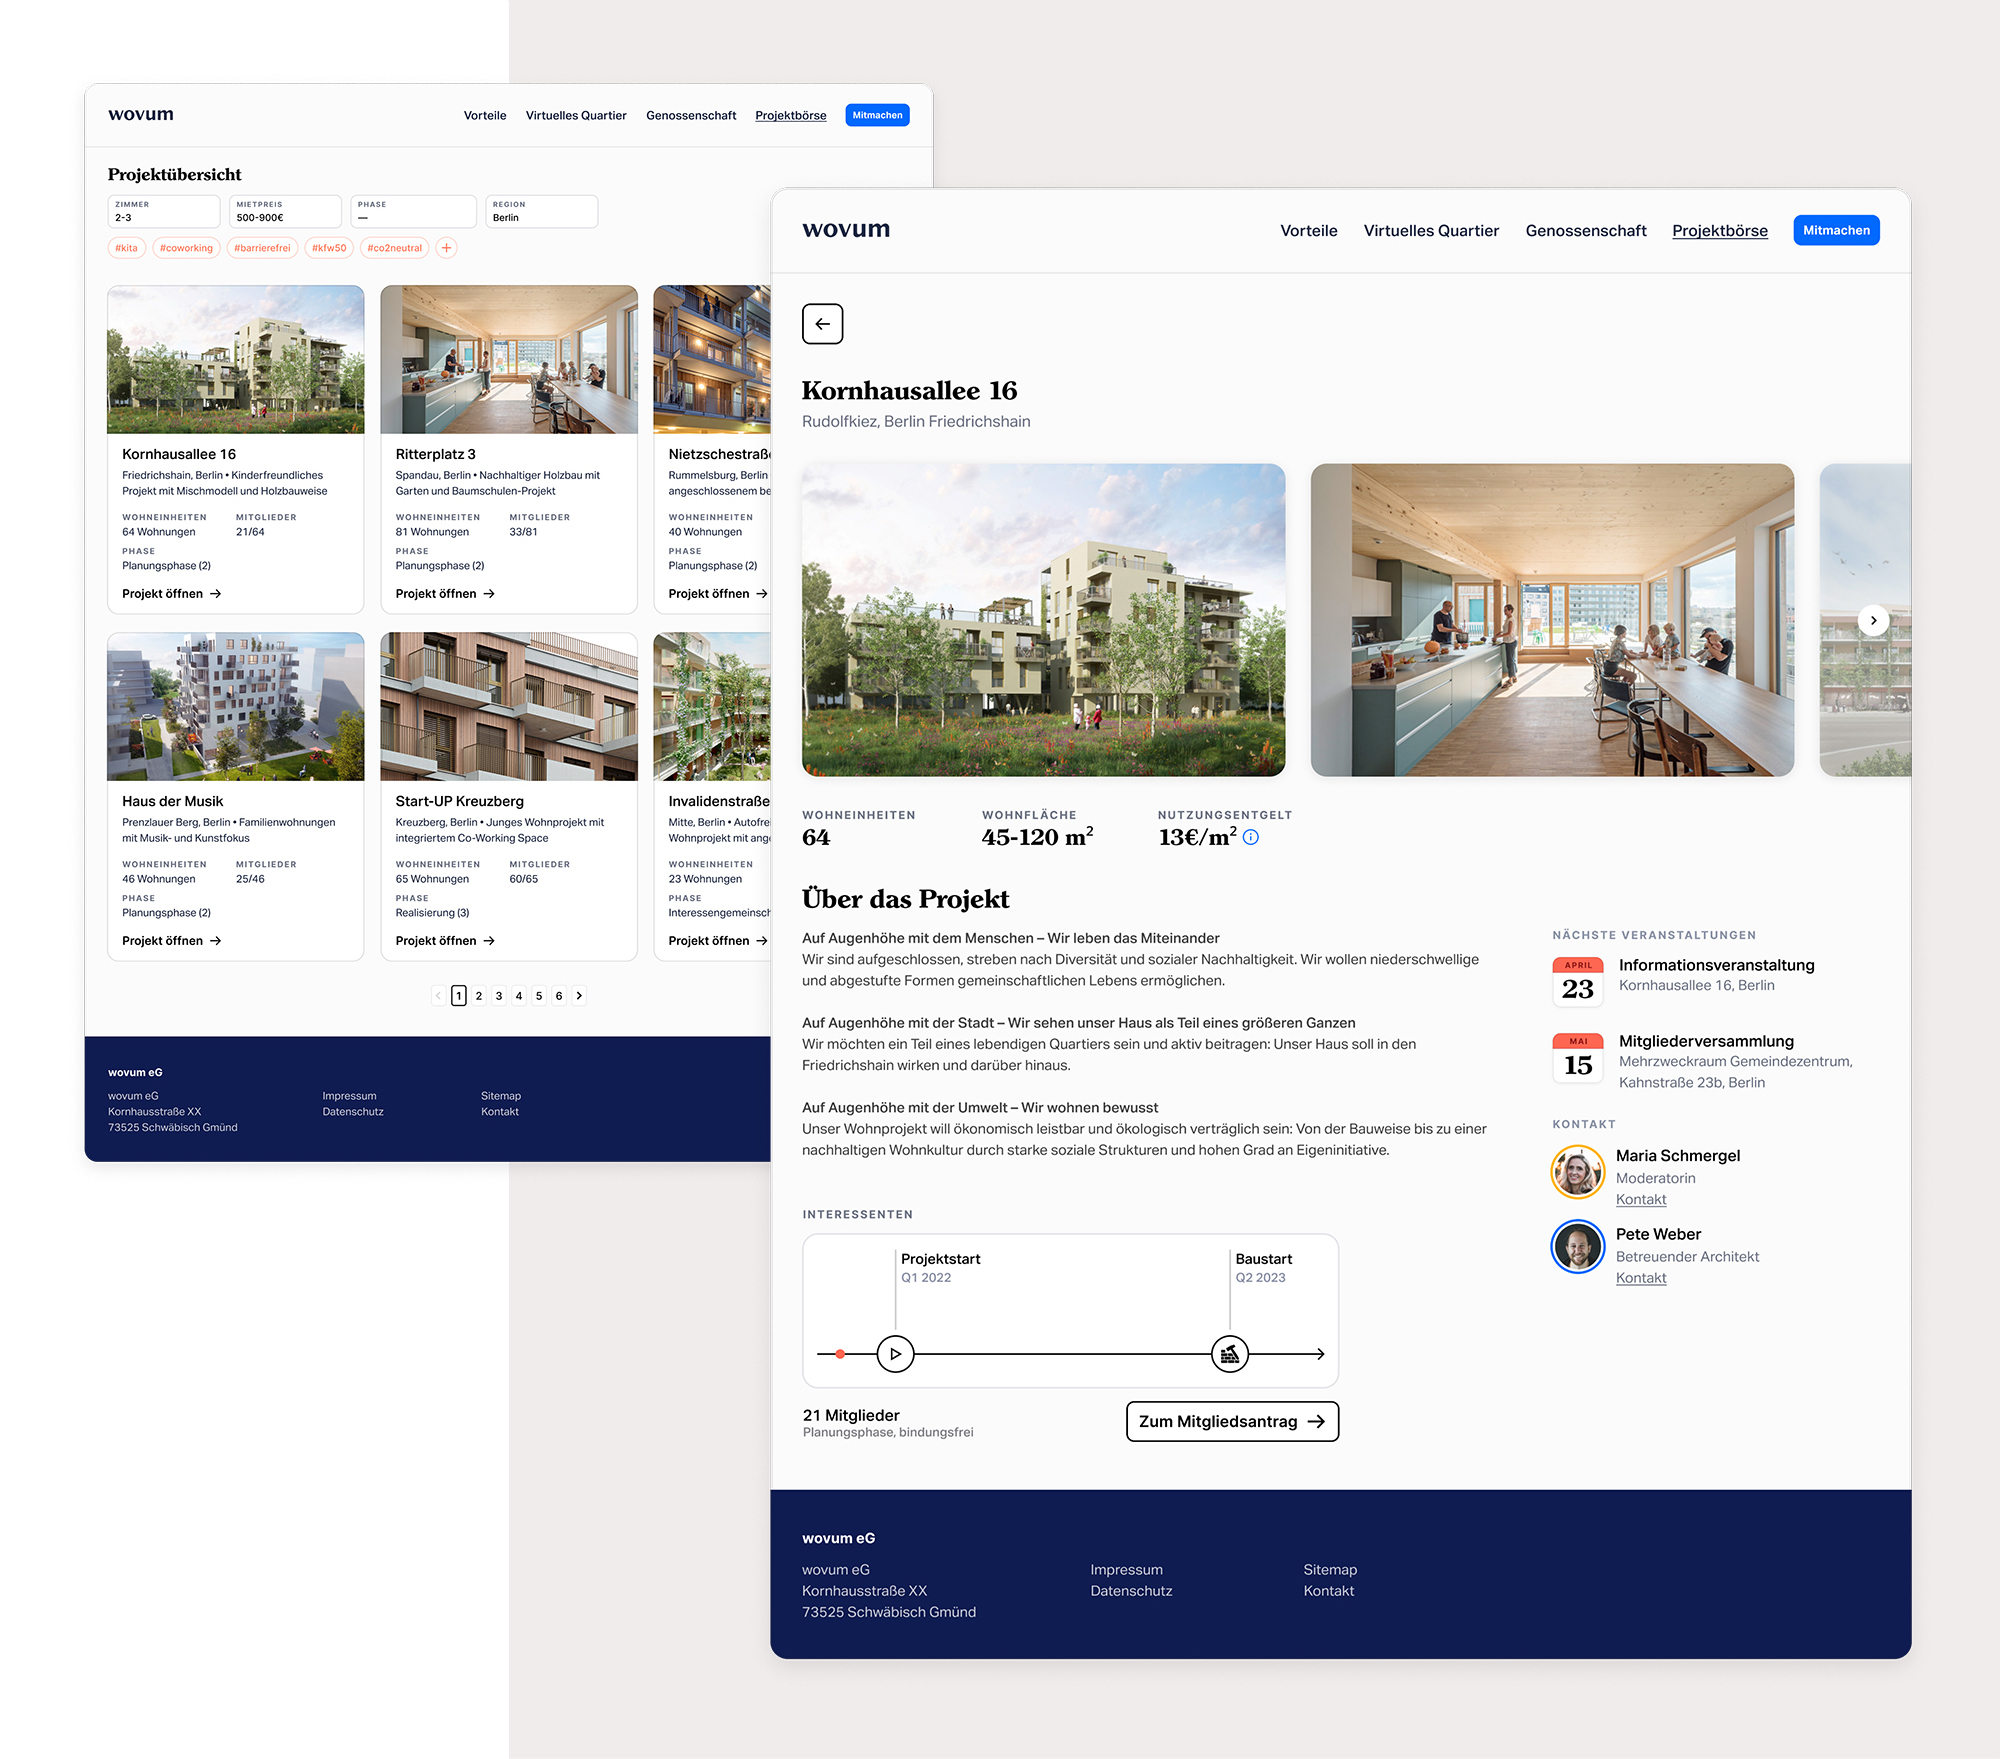 The image shows two user interface mockups that show the project directory and project detail page.